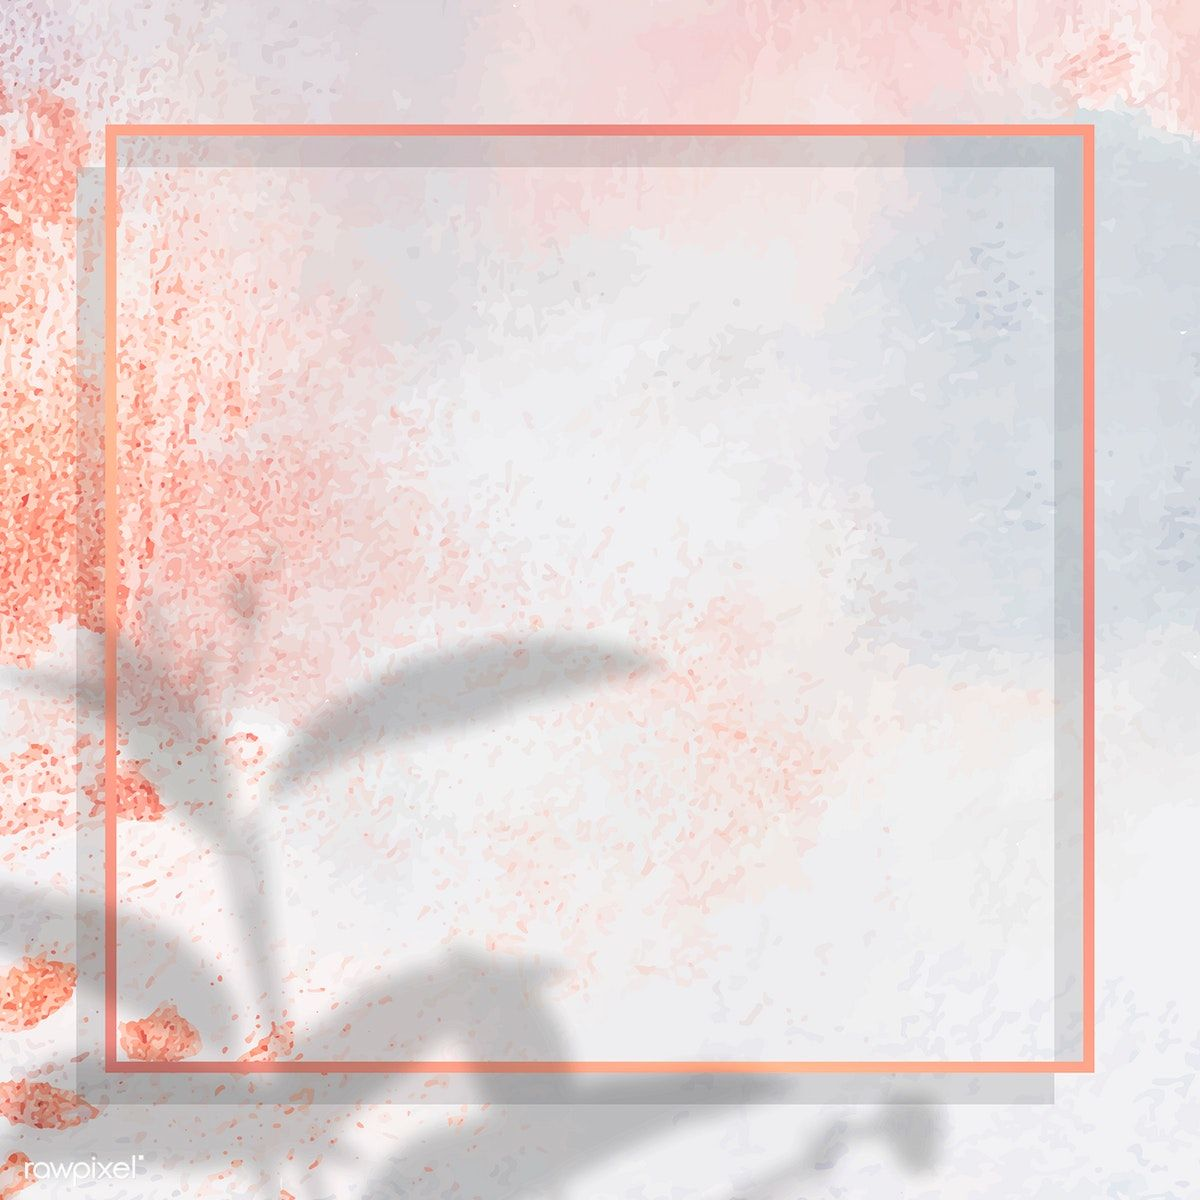 Download Premium Vector Of Square Gold Frame On Shadowed Pastel Paint Pastel Painting Paint Background Instagram Frame Template